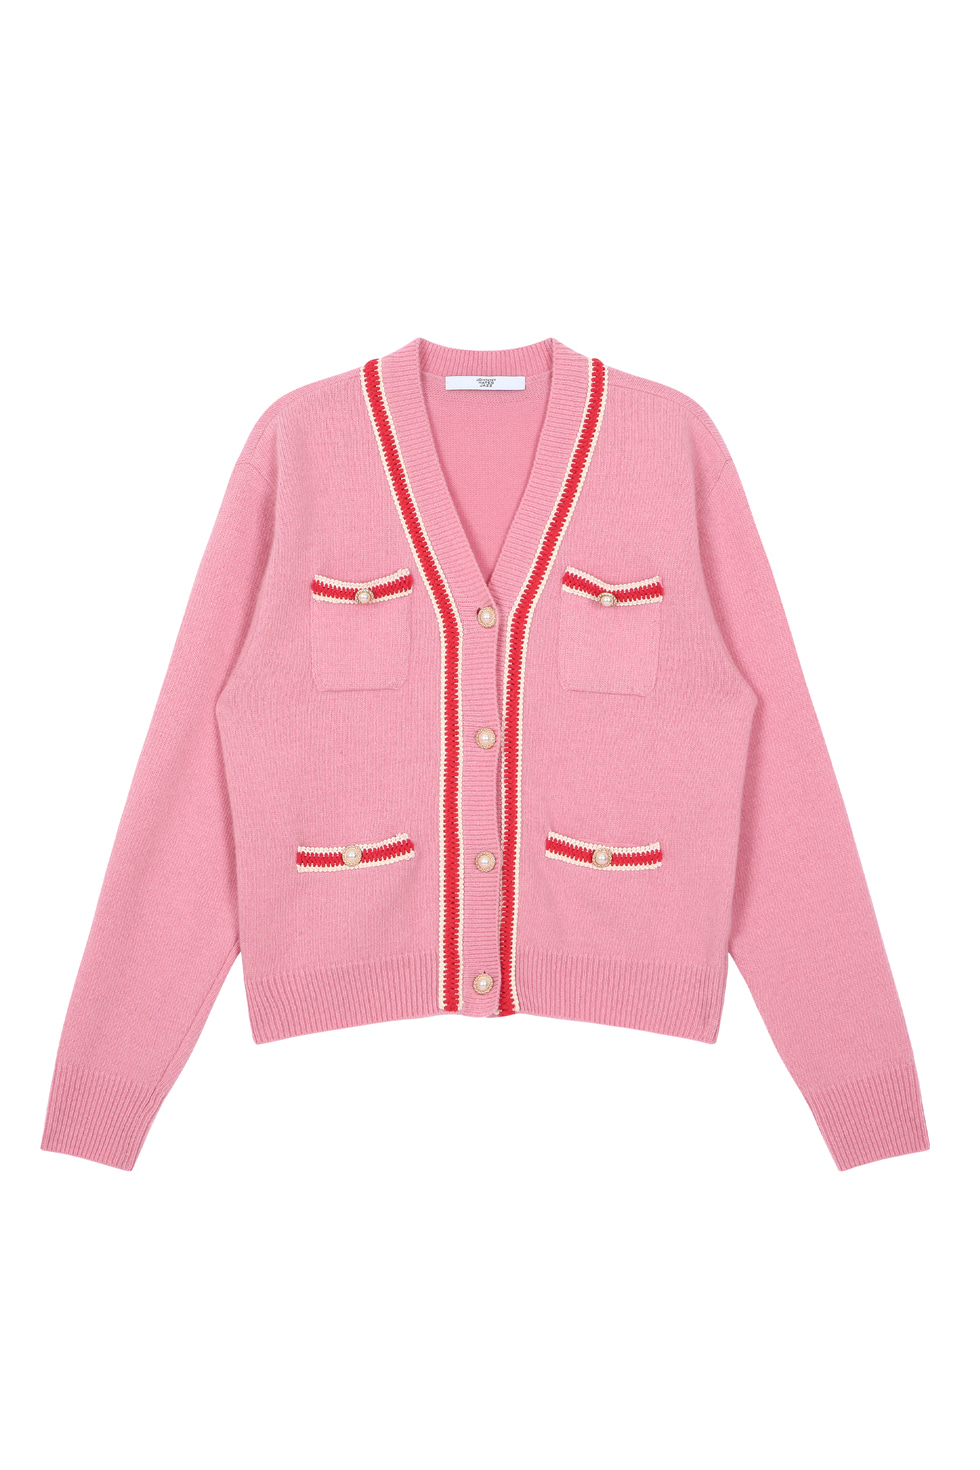 PEARL BUTTON CARDIGAN - PINK